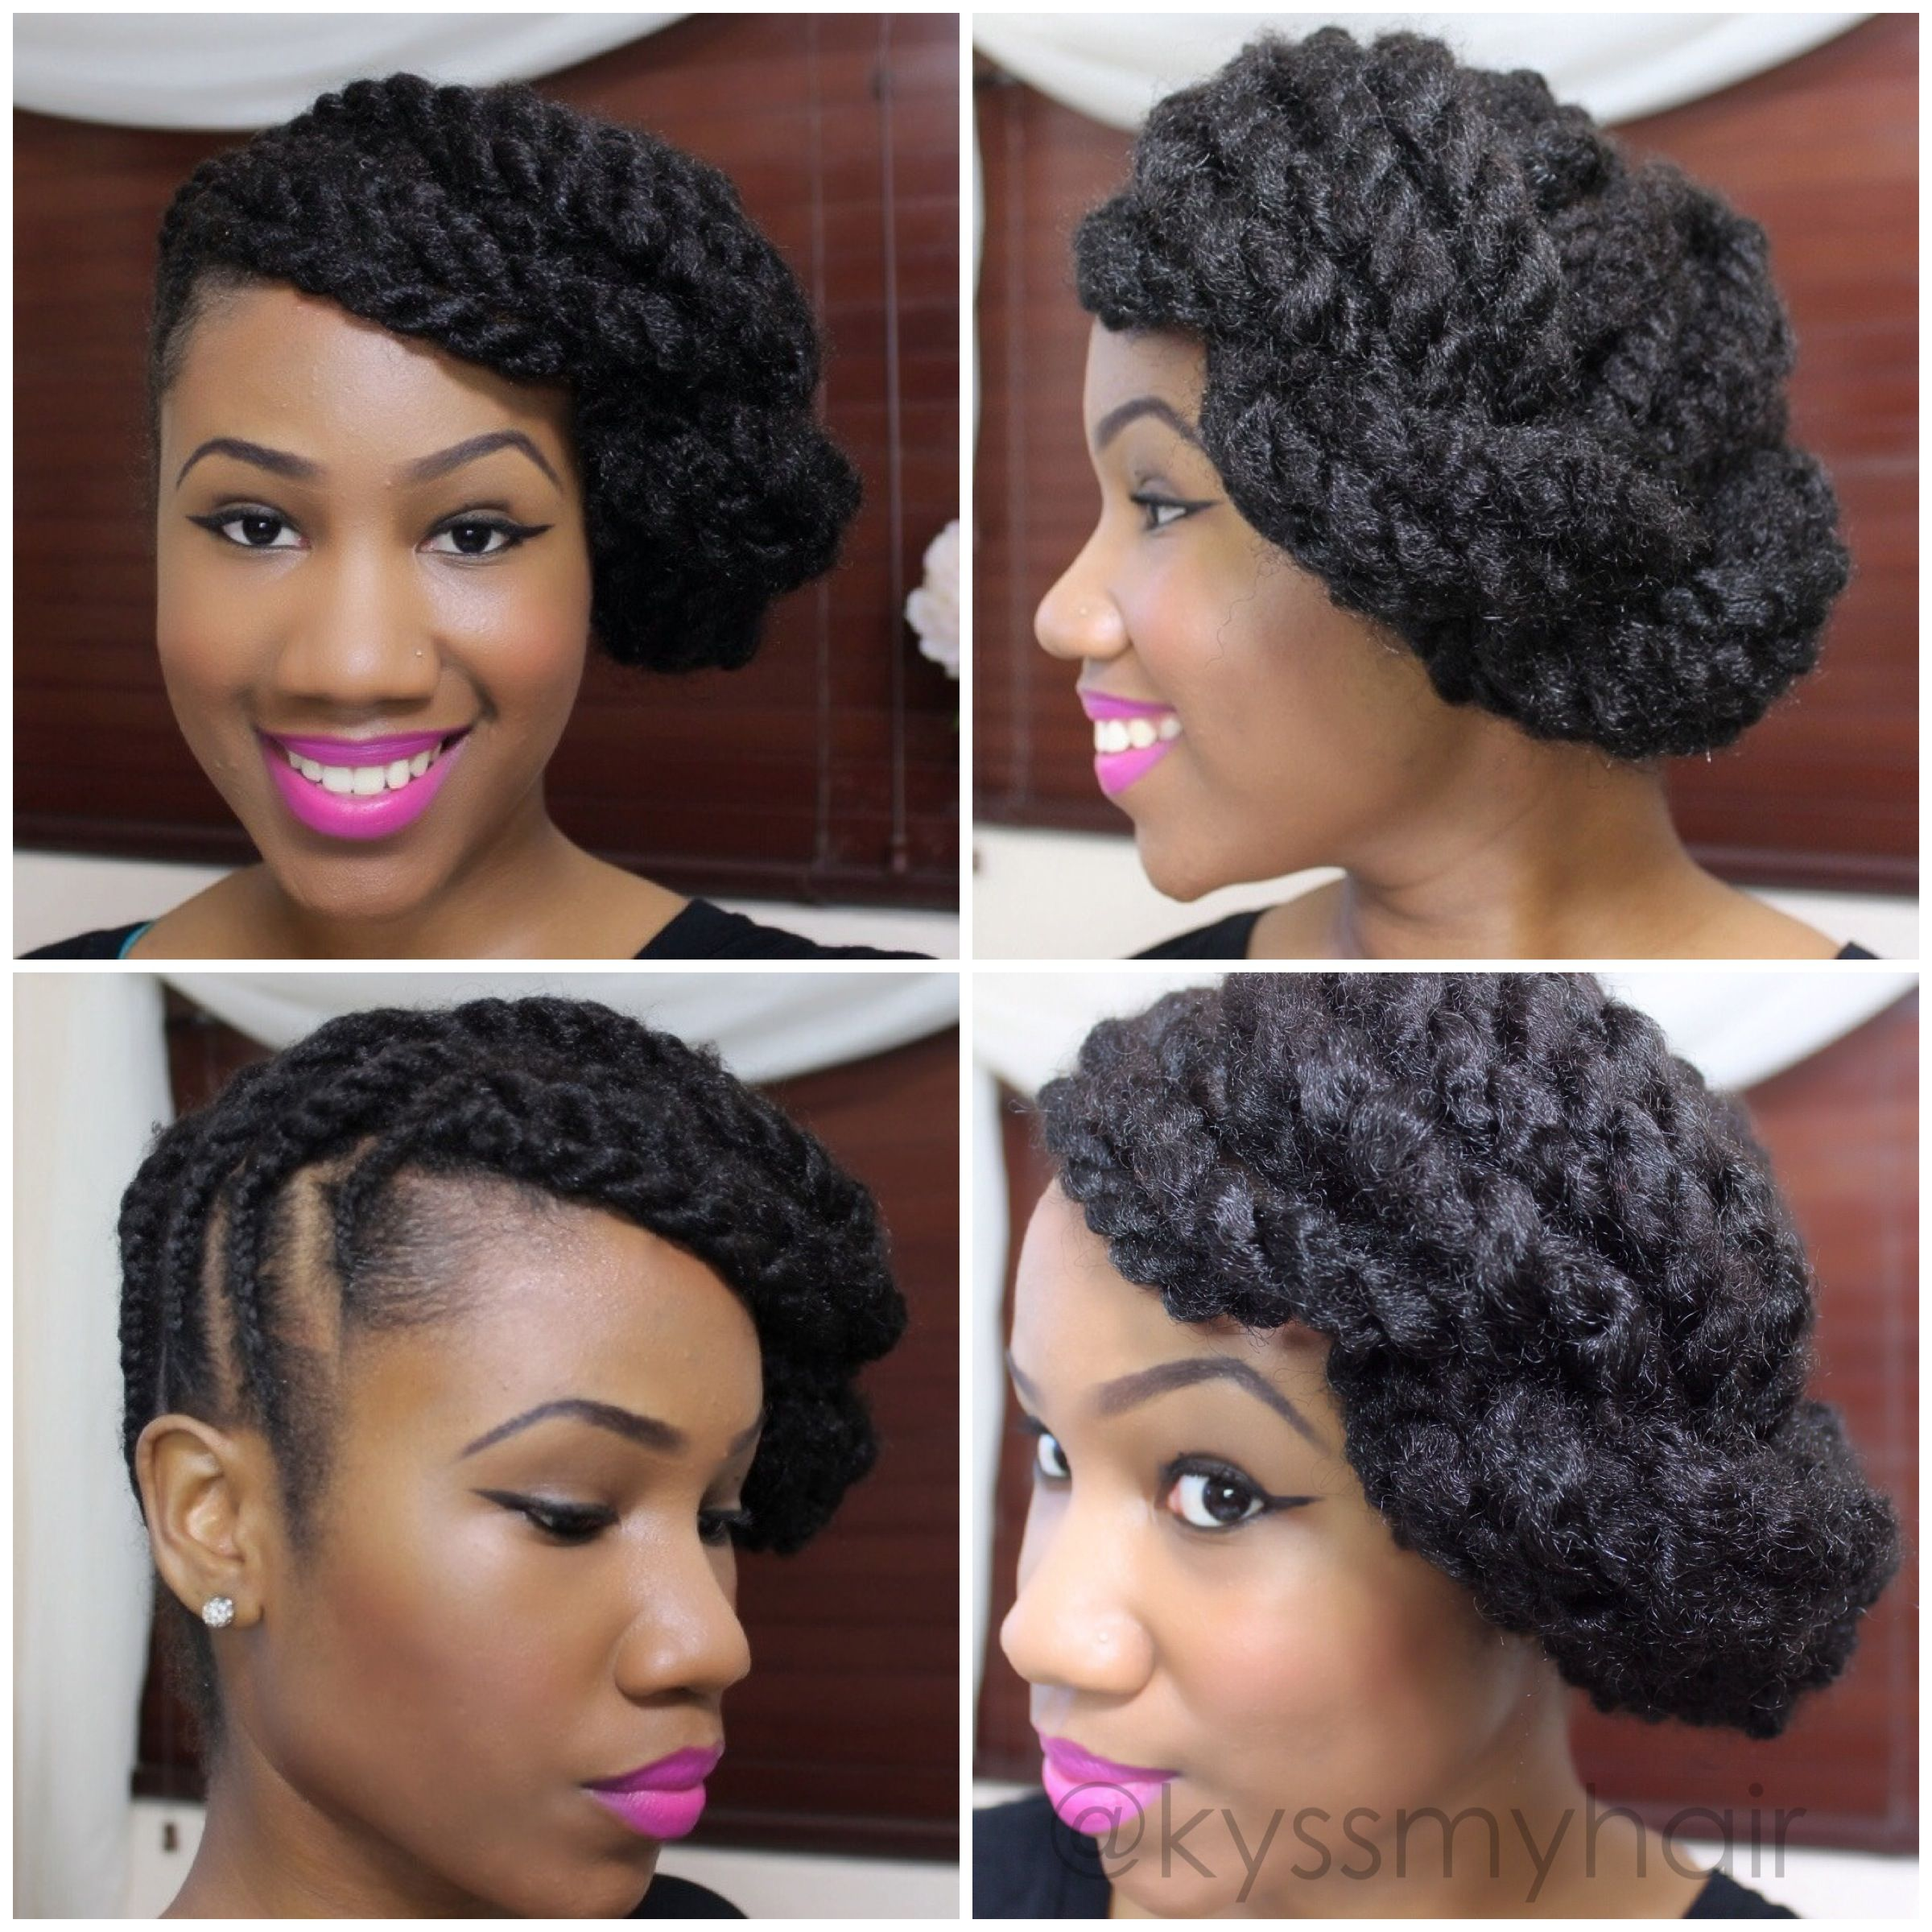 Braided updo on natural hair using marley hair kyss my hair kyss braided updo on natural hair using marley hair kyss my hair solutioingenieria Image collections